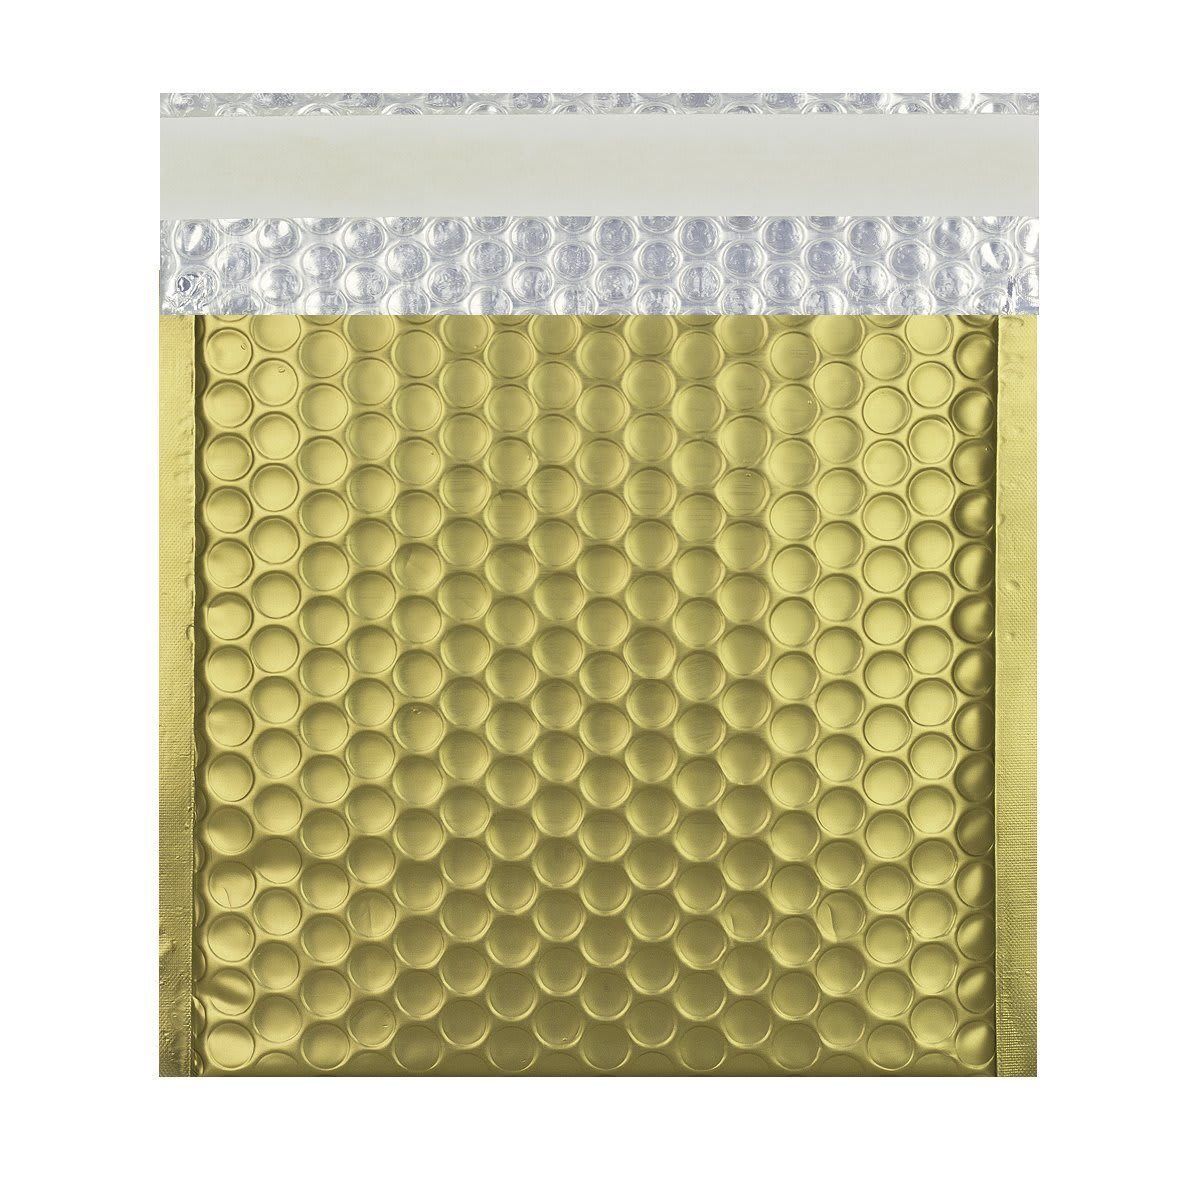 165MM SQUARE MATT METALLIC GOLD PADDED ENVELOPES